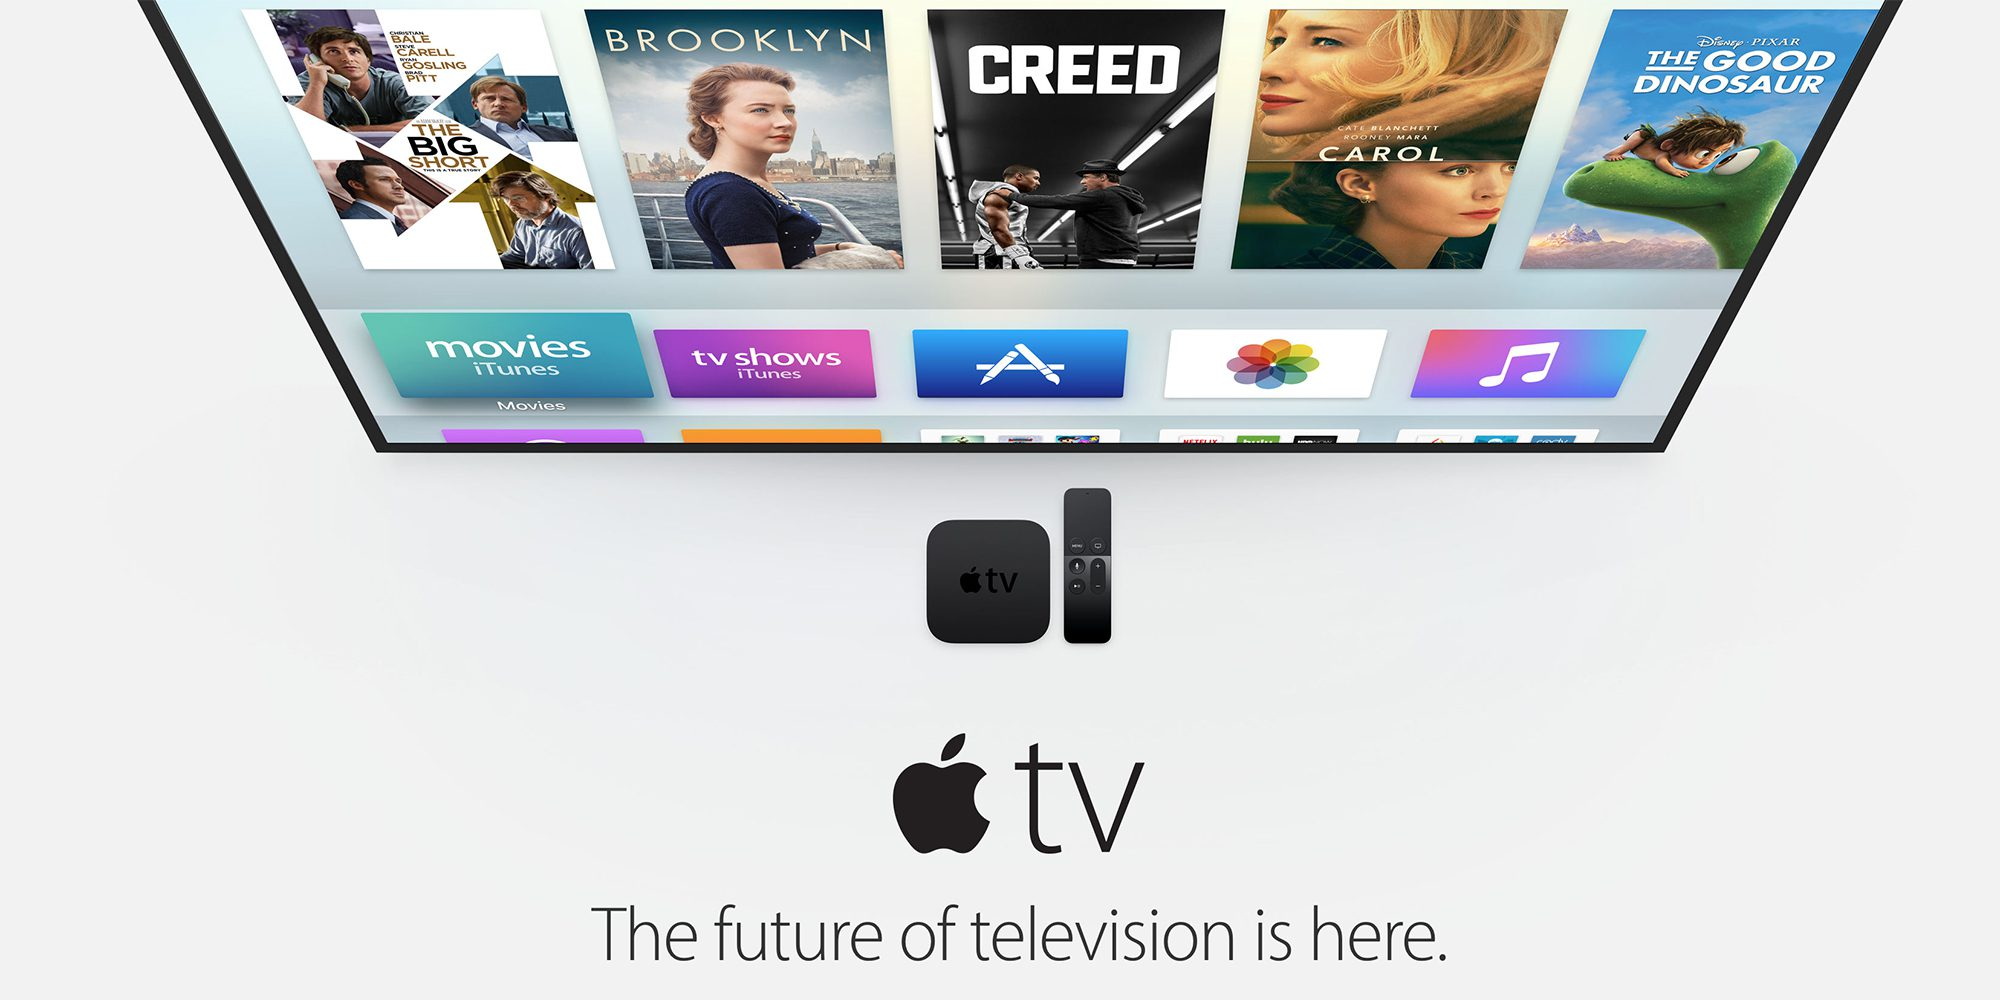 Apple Gets Serious with tvOS, Ups App Size for Better Experience